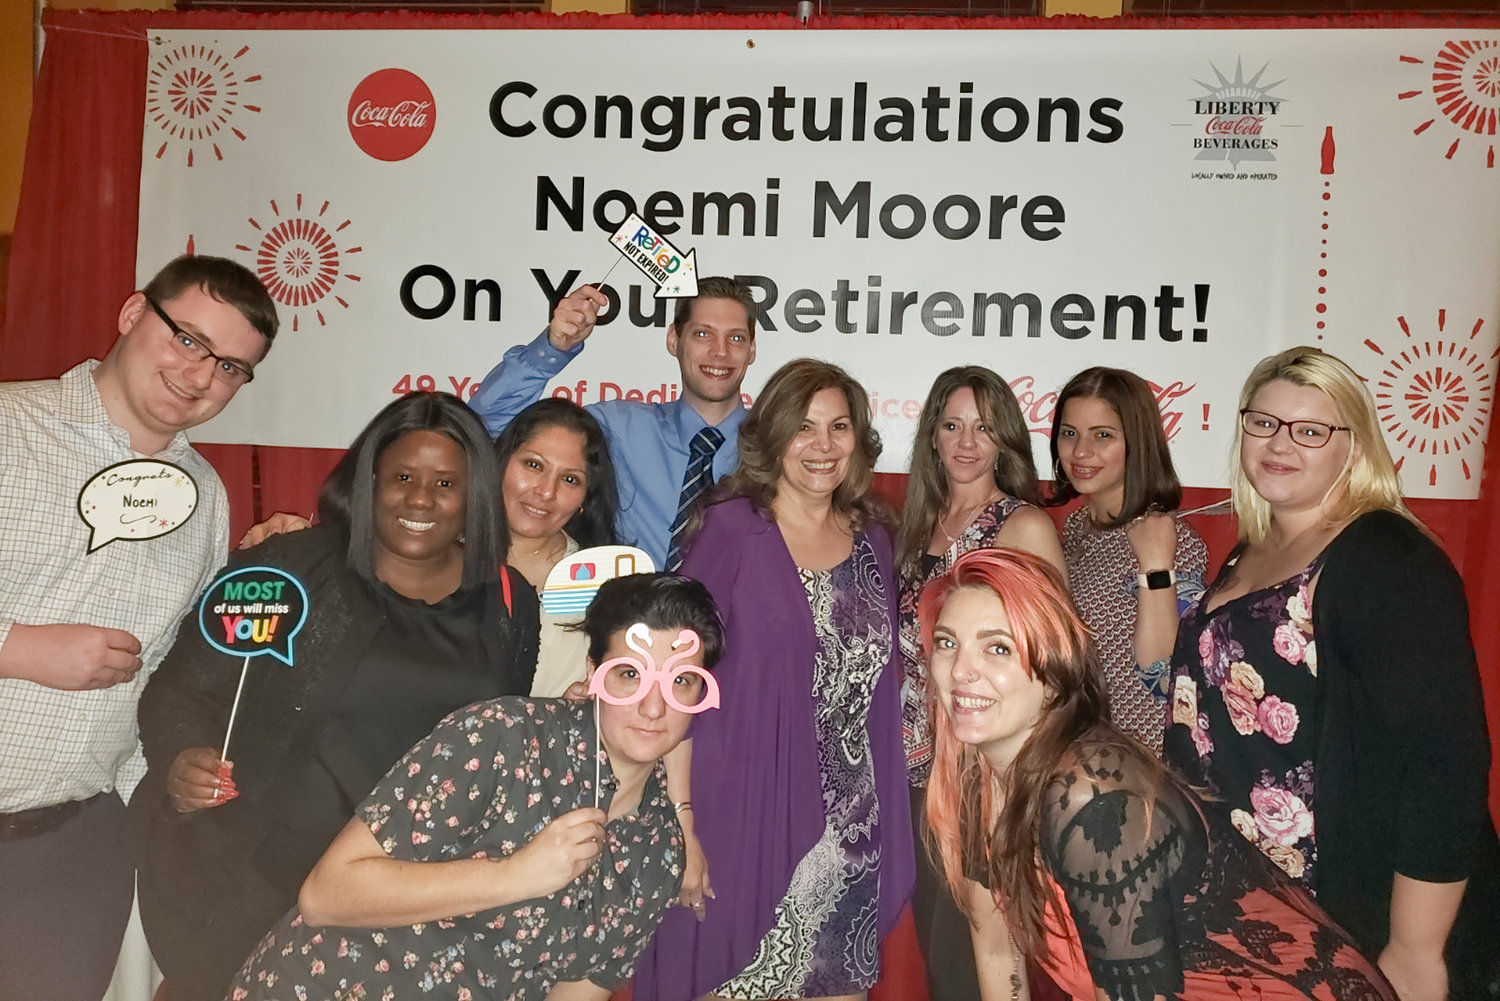 Noemi Moore, center, with her co-workers and team celebrating her retirement after nearly 50 years at Coca-Cola.